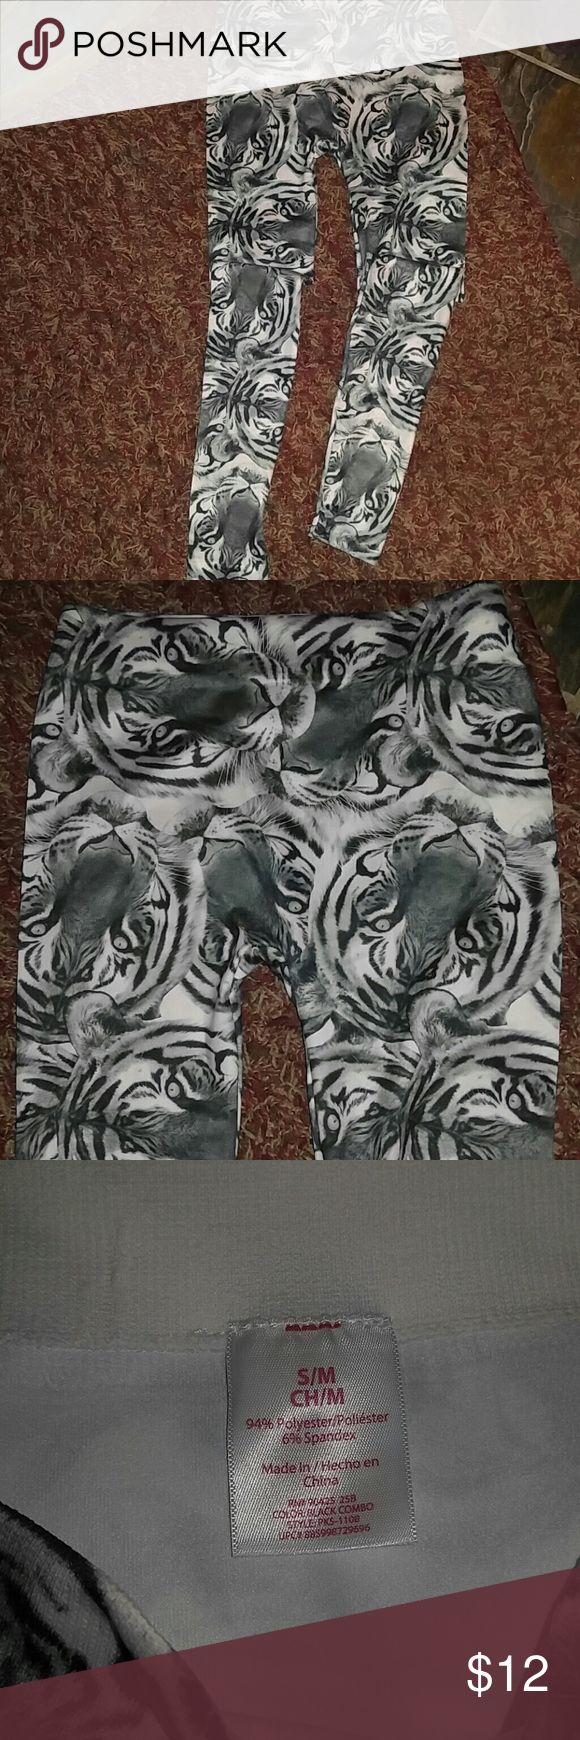 Lady's Tiger Print Leggings!! Super cute and sexy!! Black, white, & a bluish gray pair of stretchy leggings with tiger faces. New without tags. Size S/M. Unknown Pants Leggings